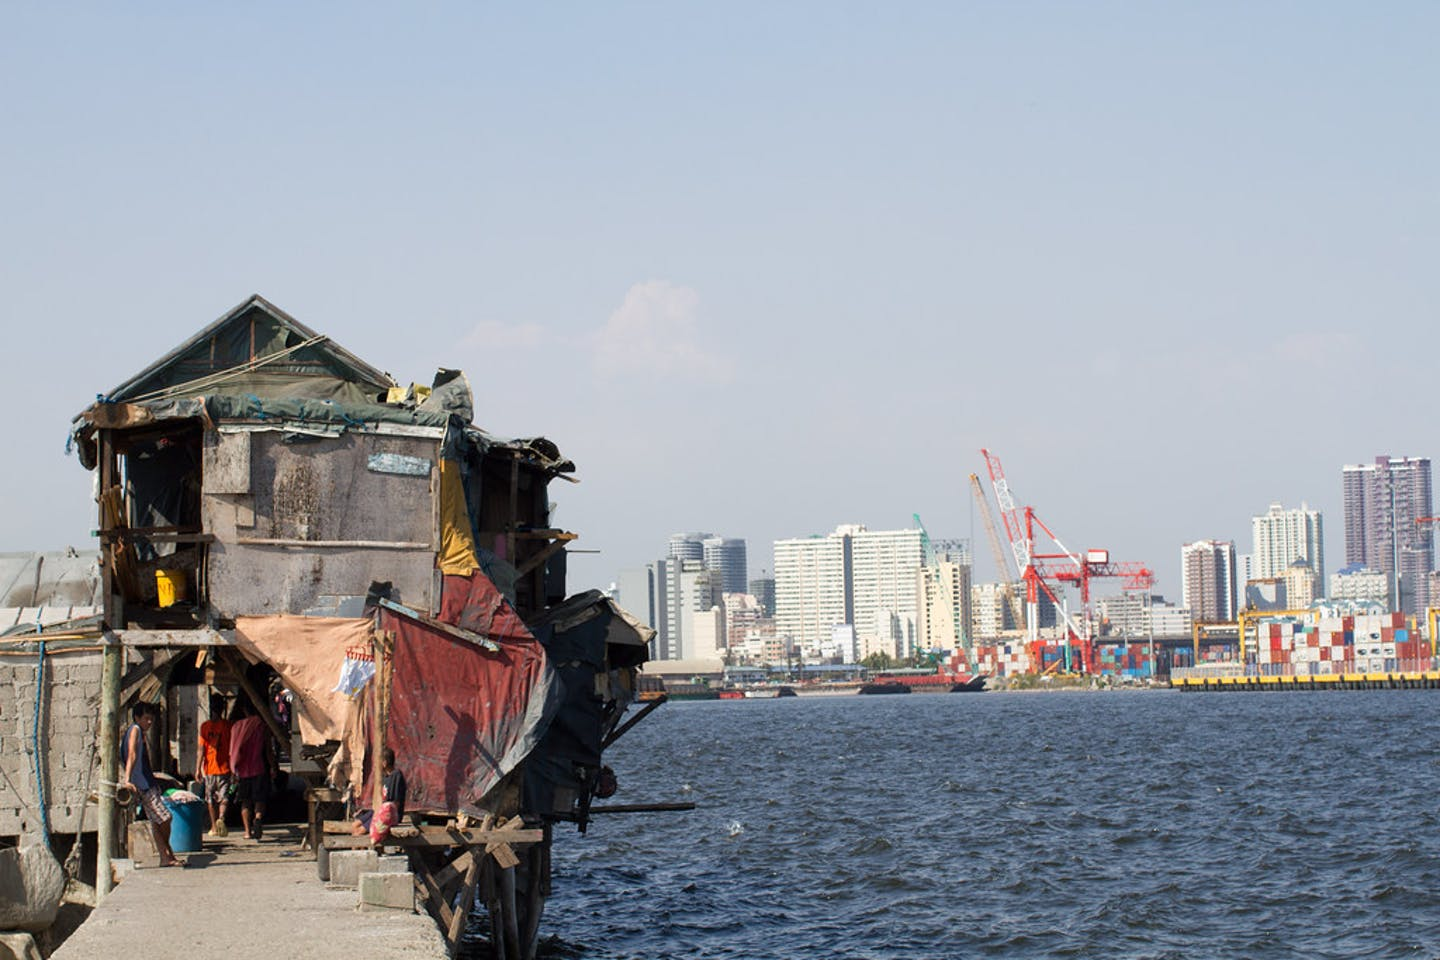 Shanties along the South Port district in Manila Bay